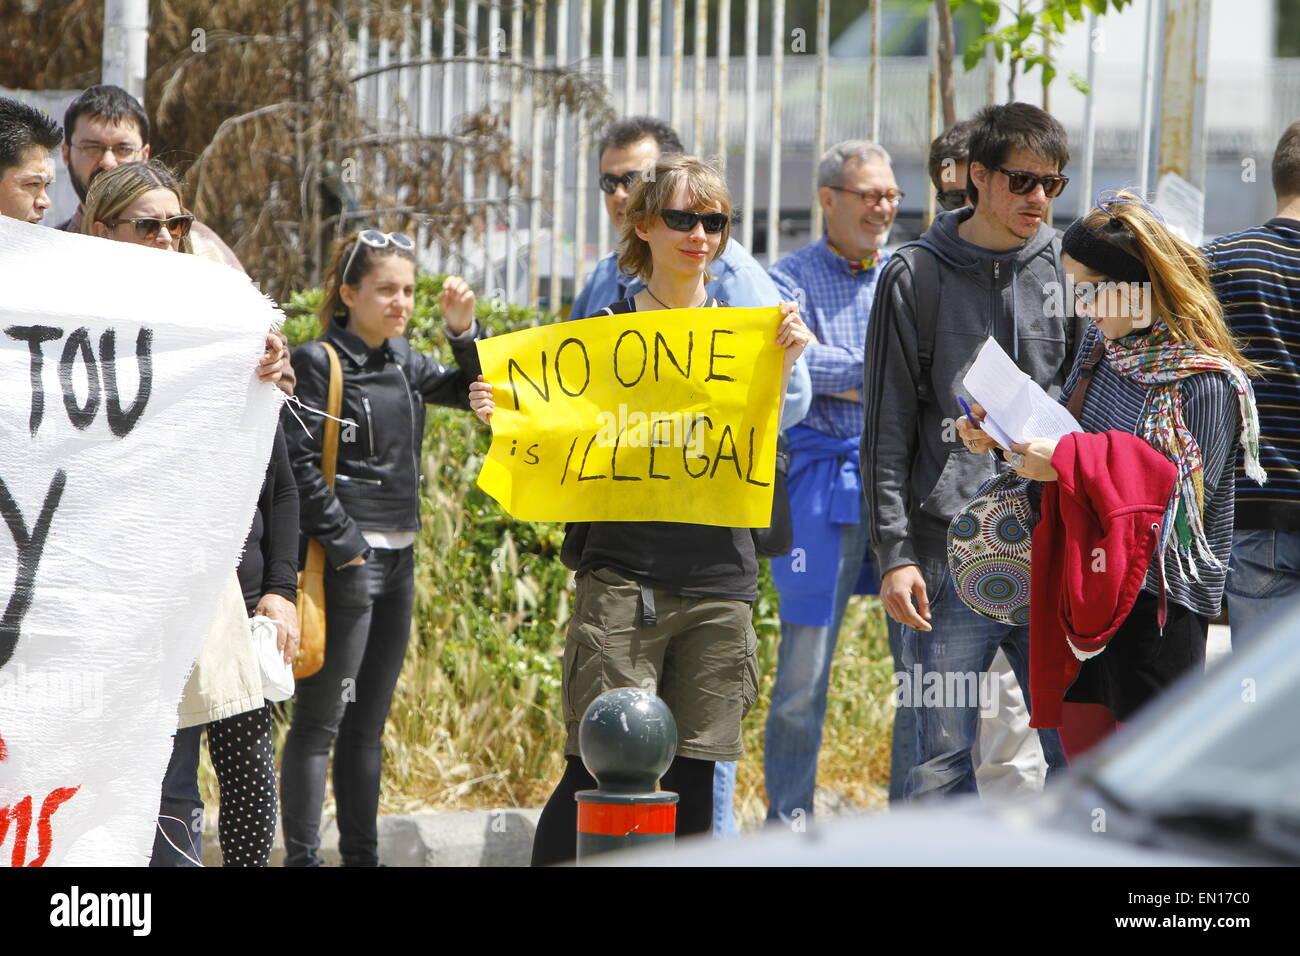 Athens, Greece. 25th Apr, 2015. A pro-immigration protester holds a sign that reads 'No one is illegal' - Stock Image